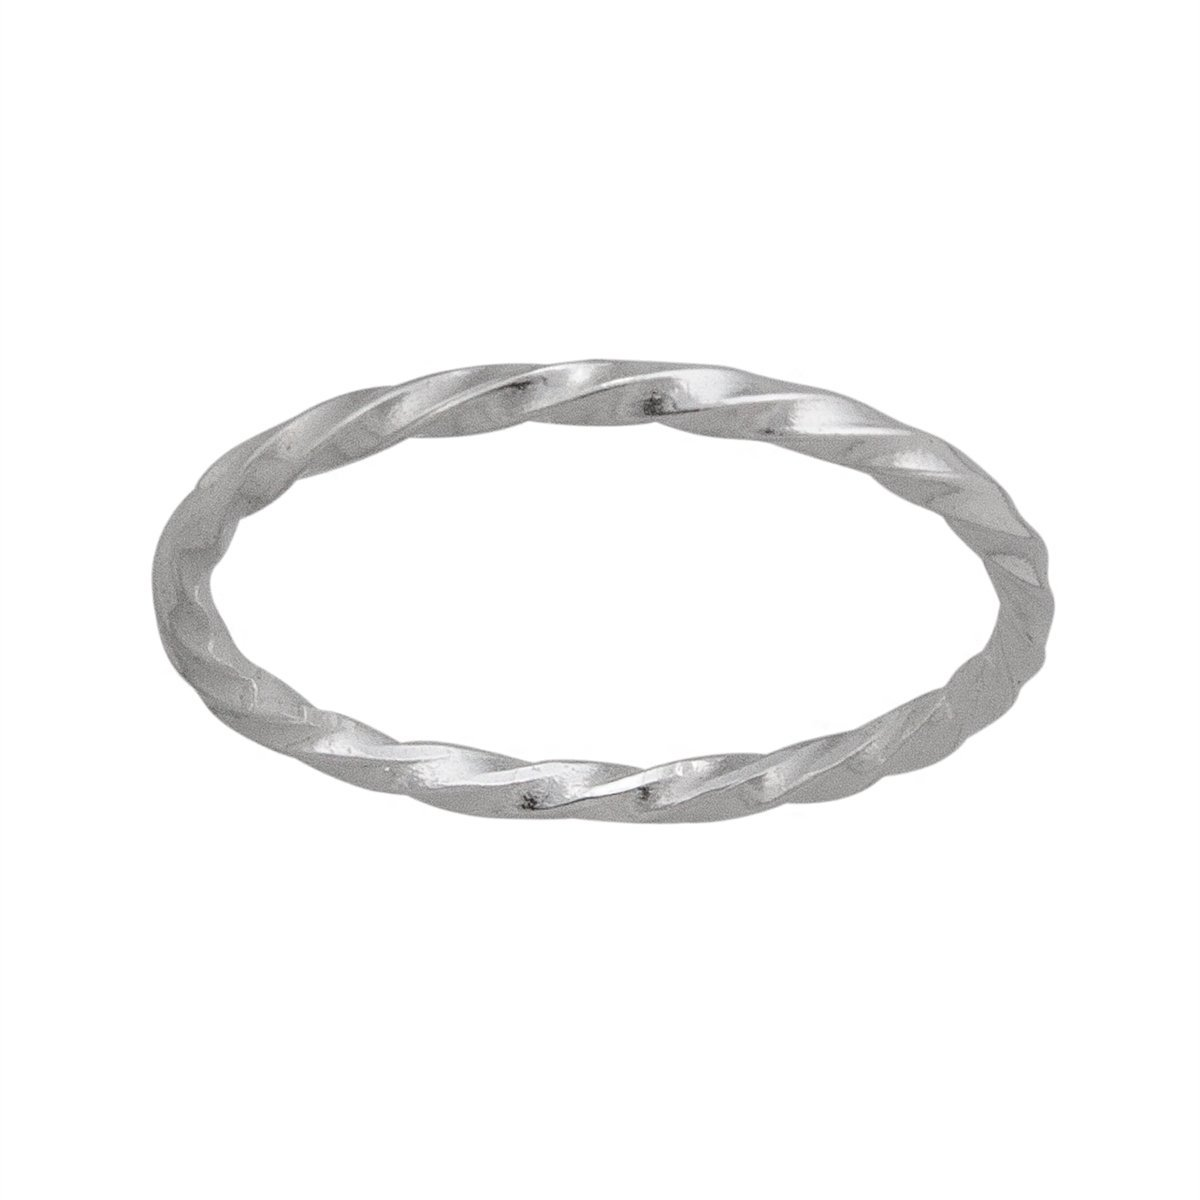 sterling-silver-forever-with-a-twist-ring - 1 - Charles Albert Inc